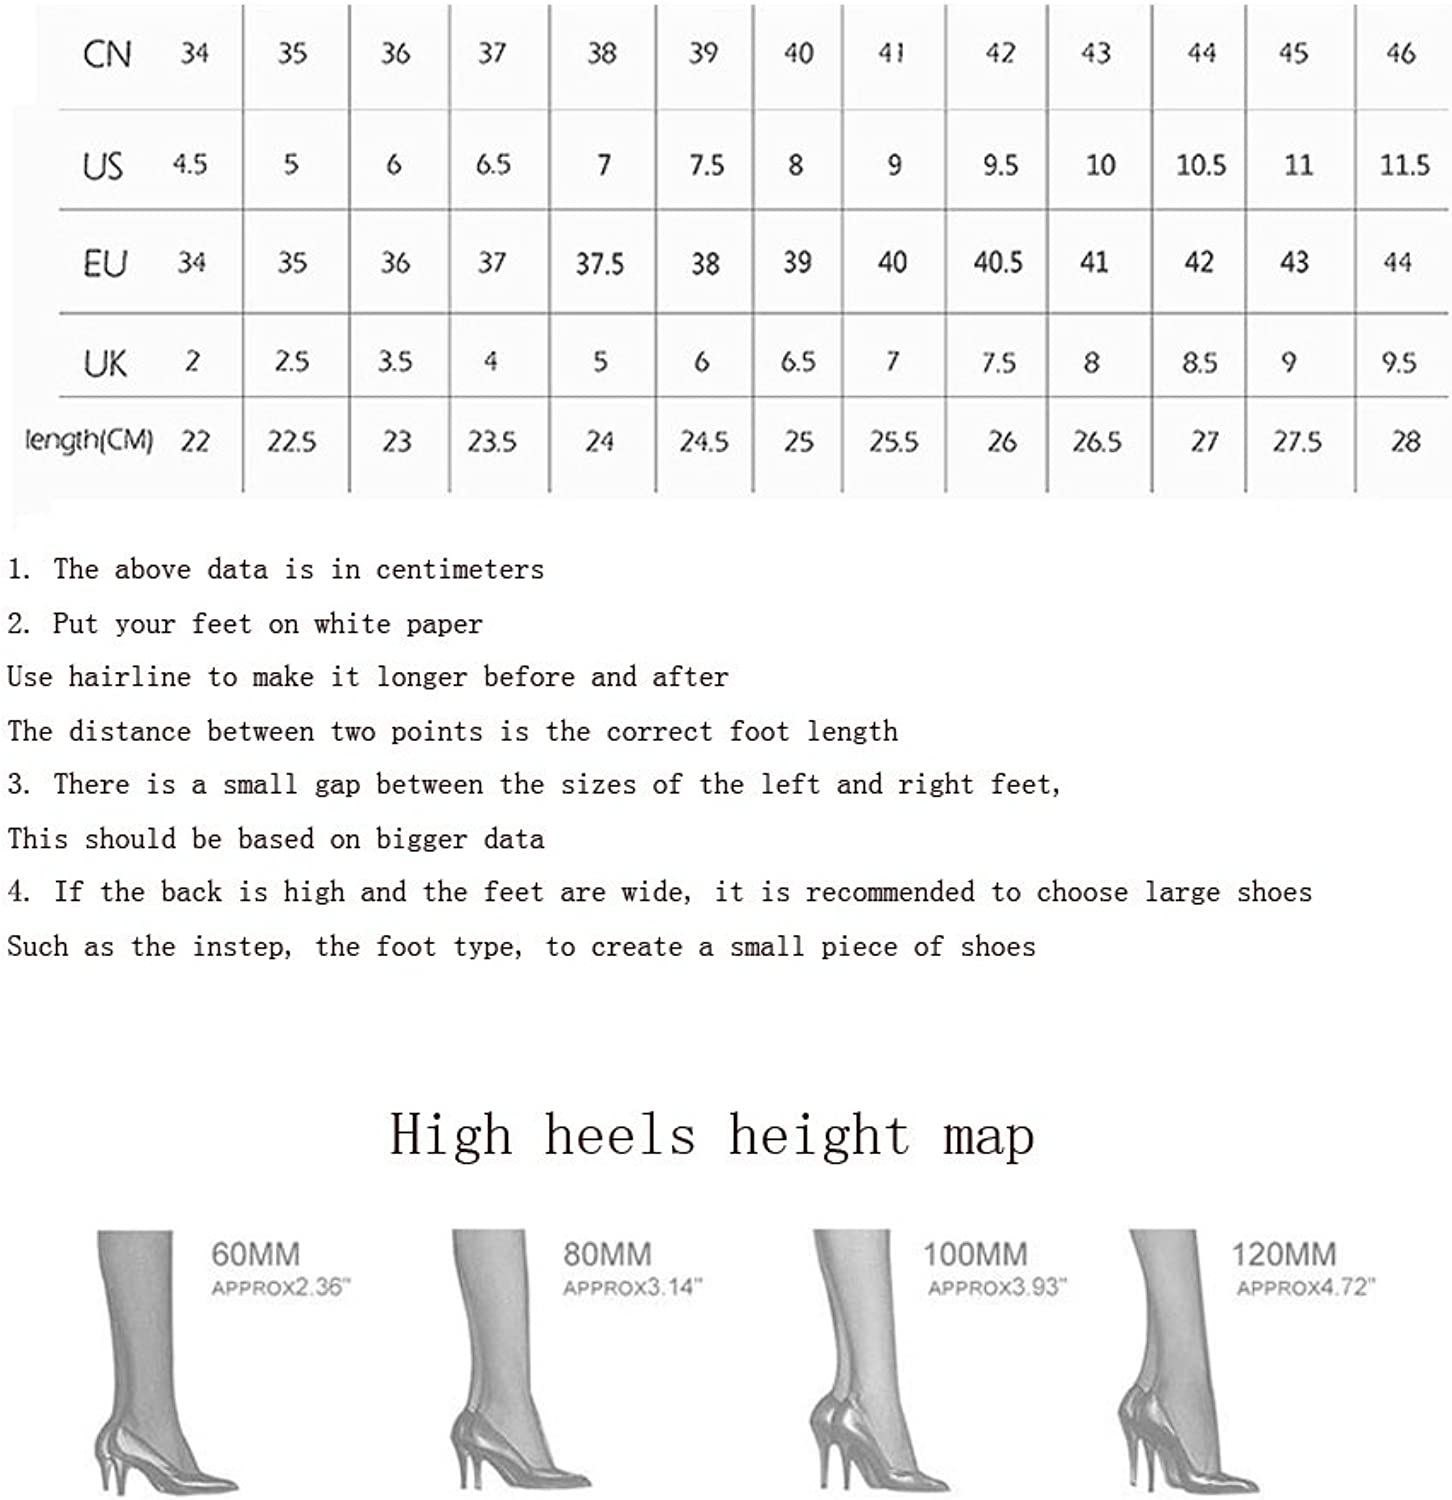 LZWSMGS Spring And Autumn Artificial PU Women's High Heels Metal Buttons Solid color Thin High Heels Shallow shoes Fashion Street Office High Heels A Variety Of colors Available 34-39cm Ladies sandals